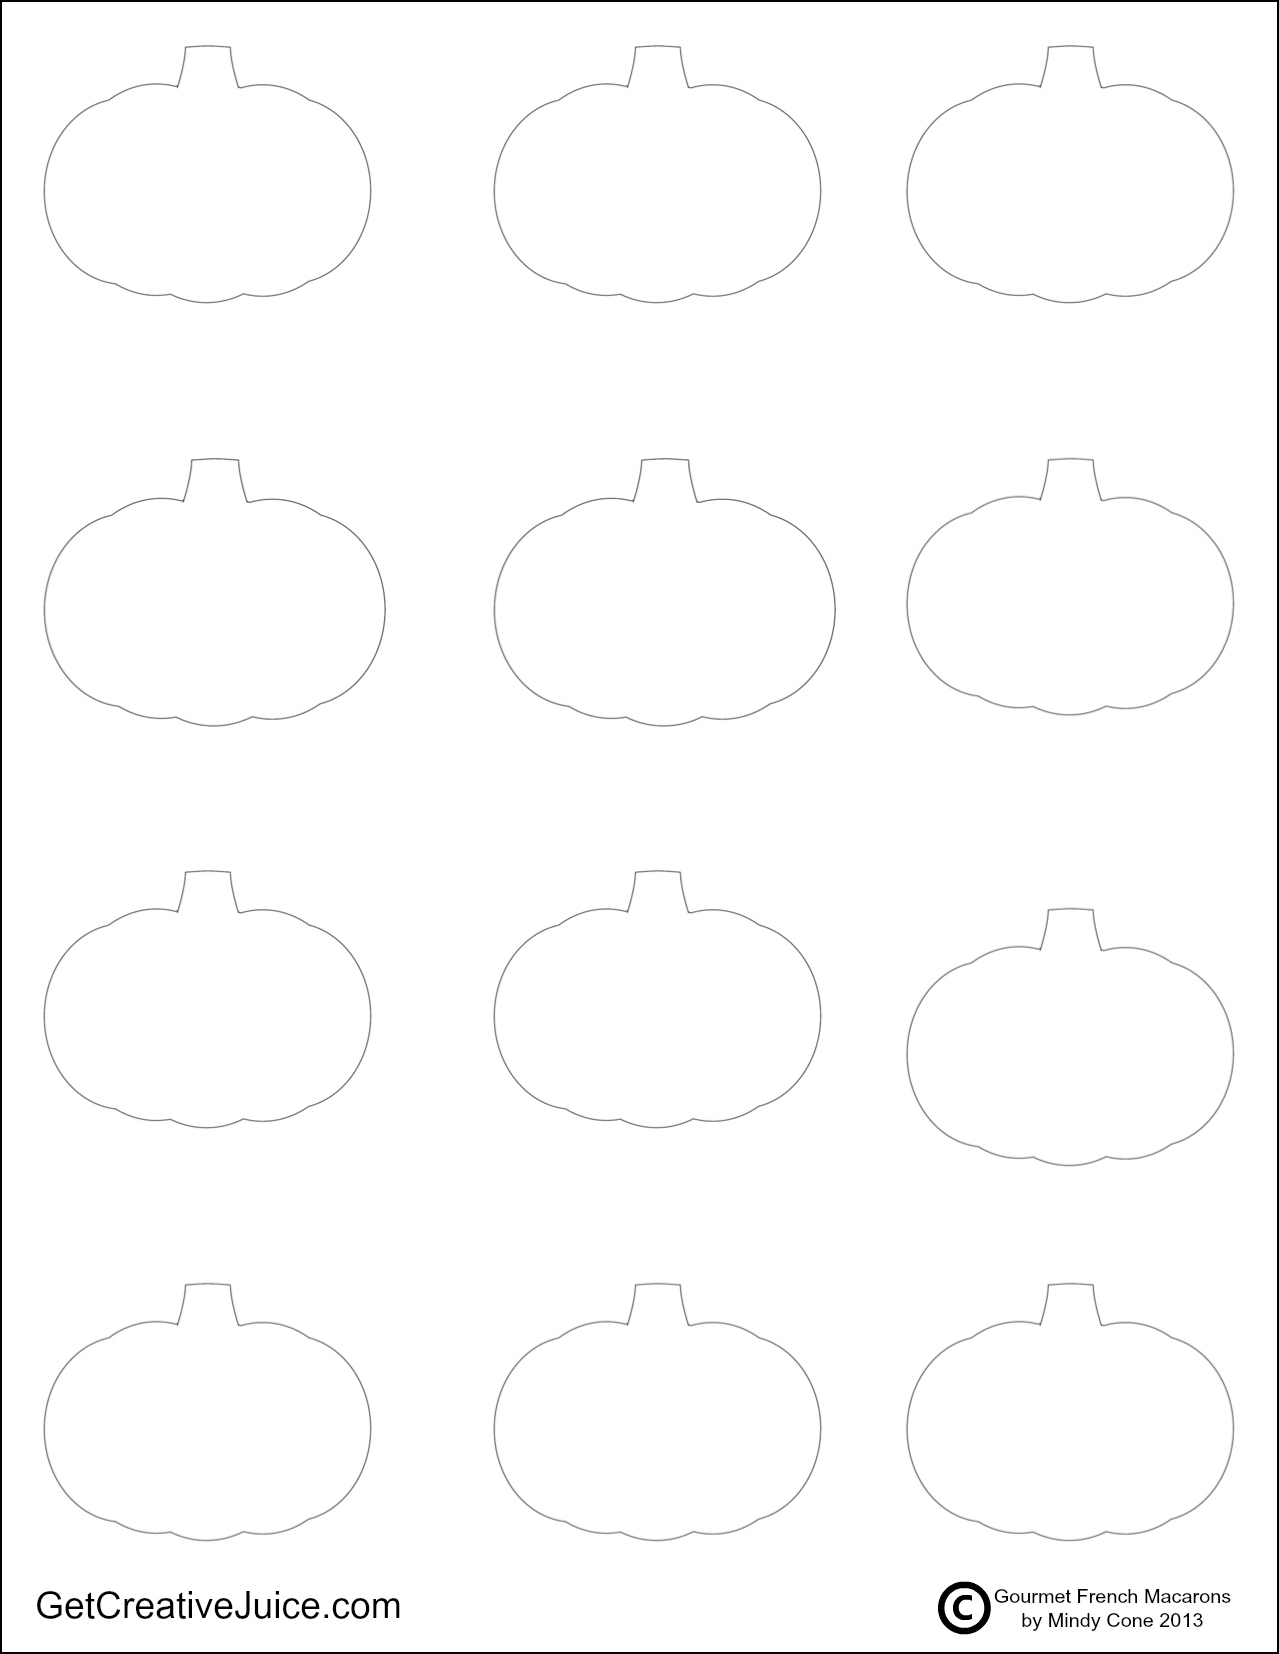 photo regarding Printable Macaron Template named Pumpkin Macarons - Recipe, Guideline, and Printable Template